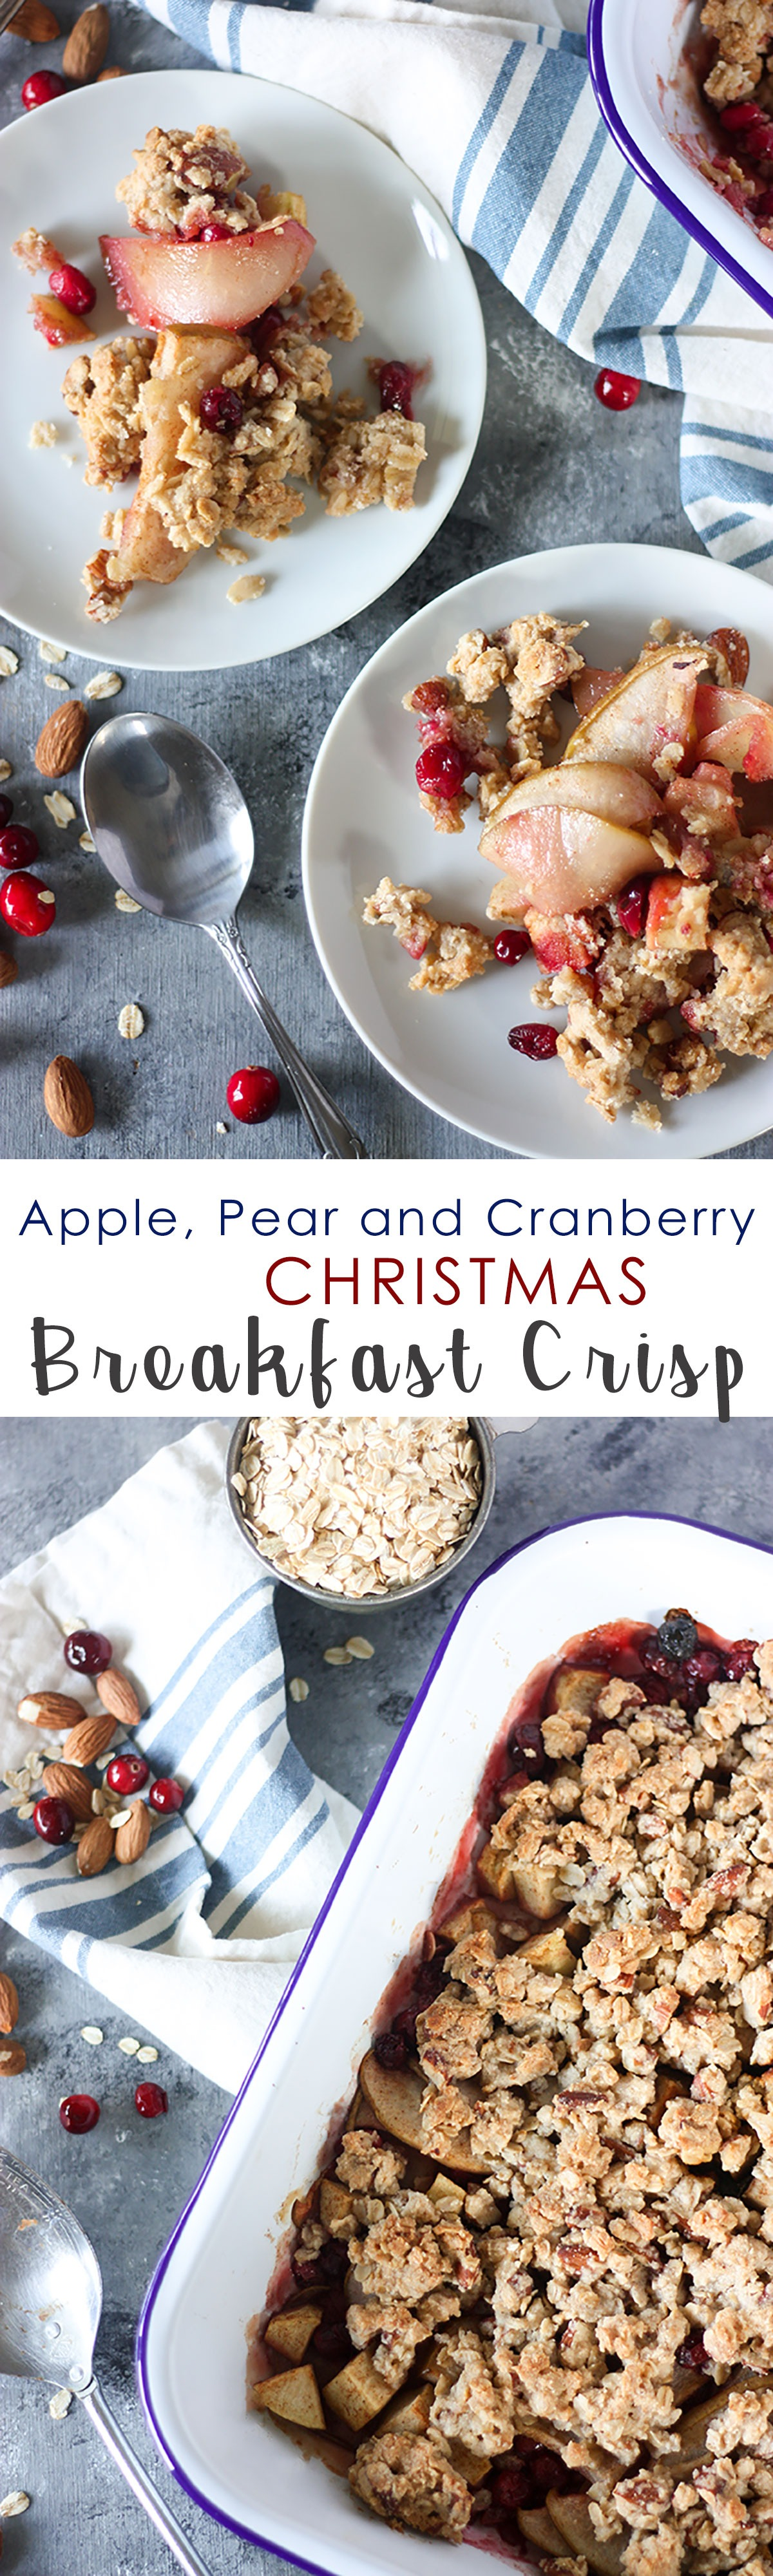 Apple, Pear and Cranberry Breakfast Crisp www.thehomecookskitchen.com